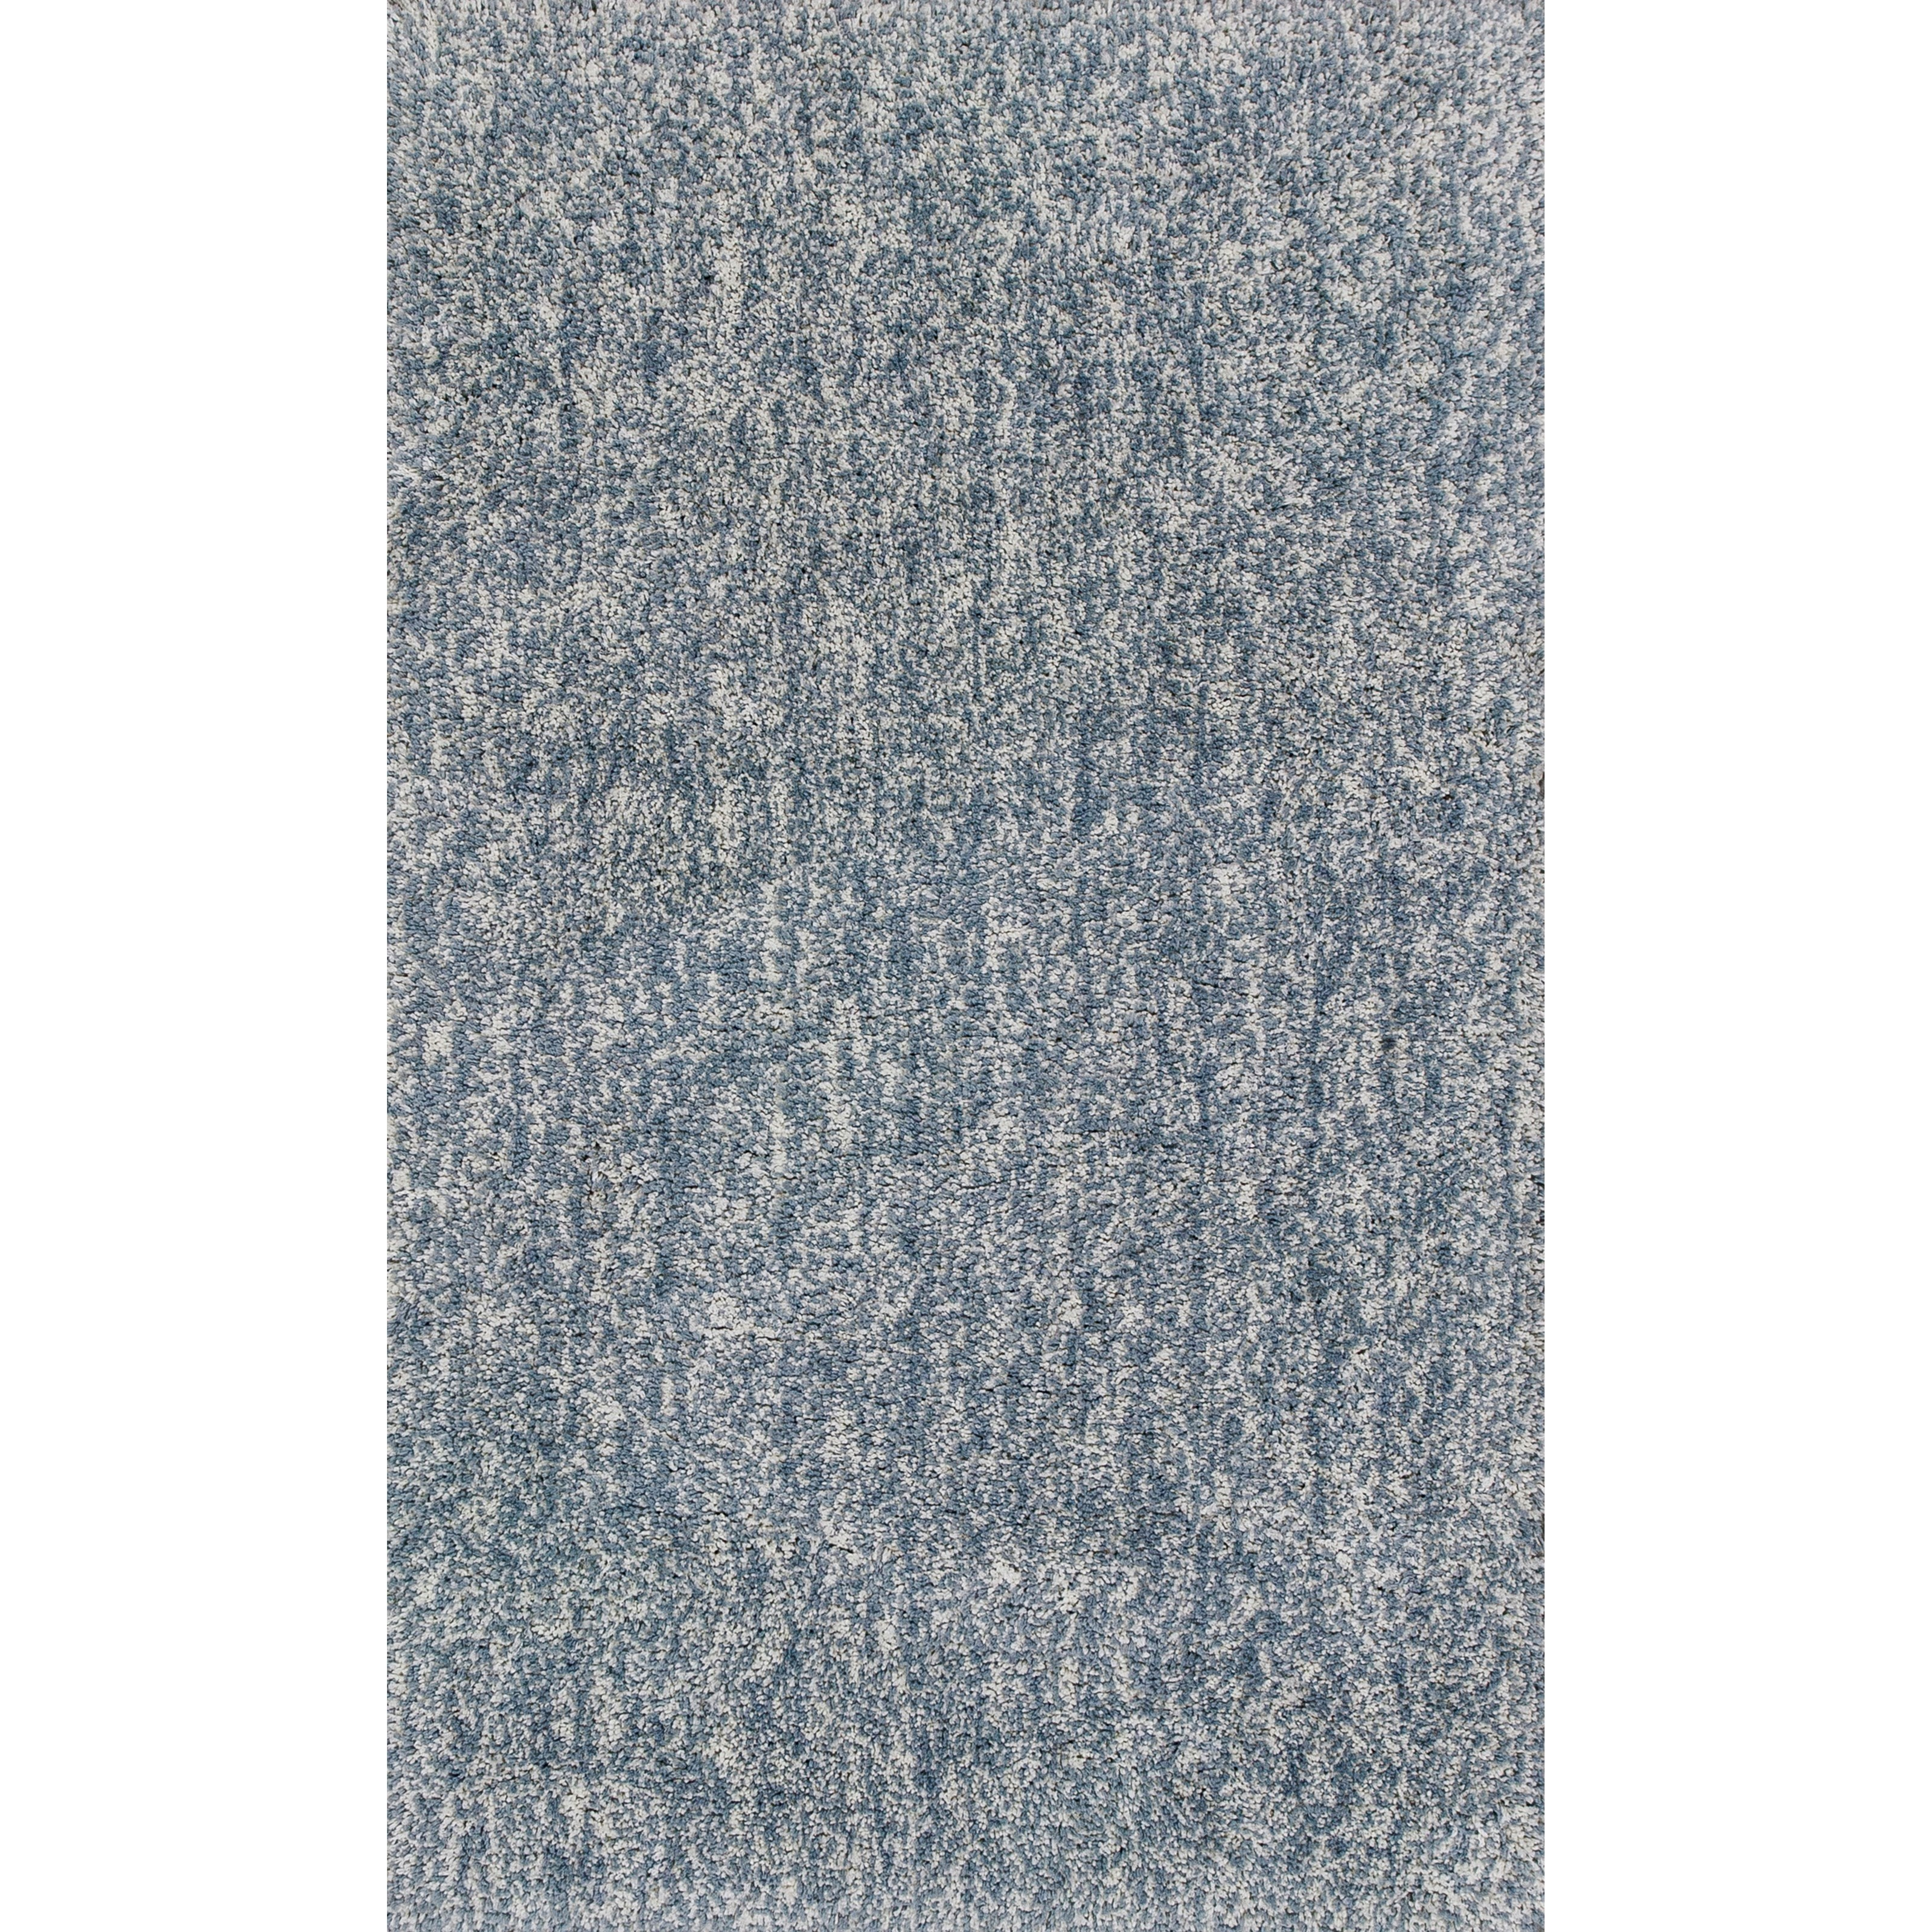 "Bliss 7'6"" X 9'6"" Slate Heather Shag Area Rug by Kas at Zak's Home"